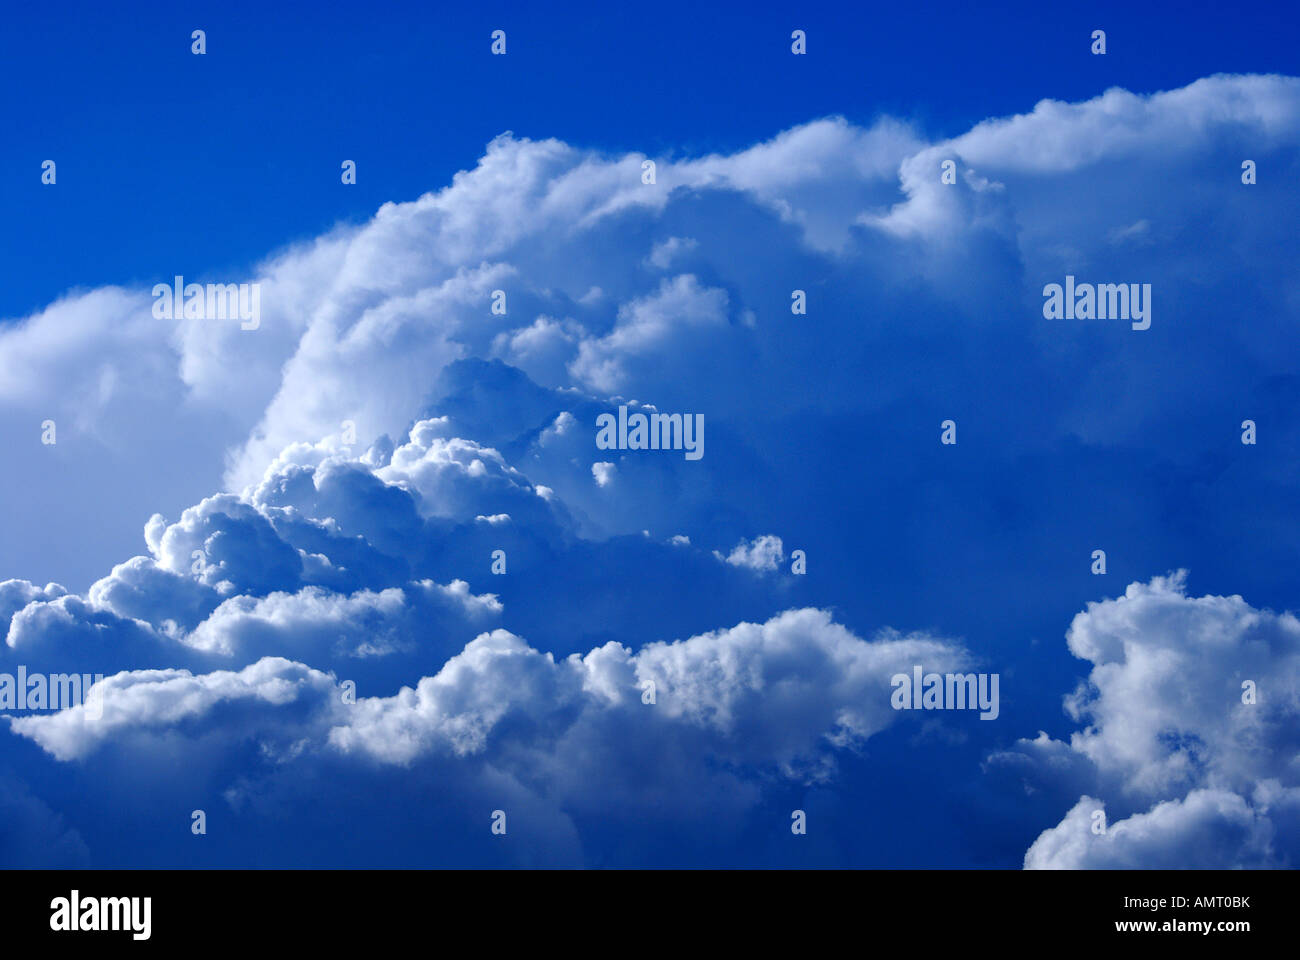 Summer Storm Clouds in the UK - Stock Image